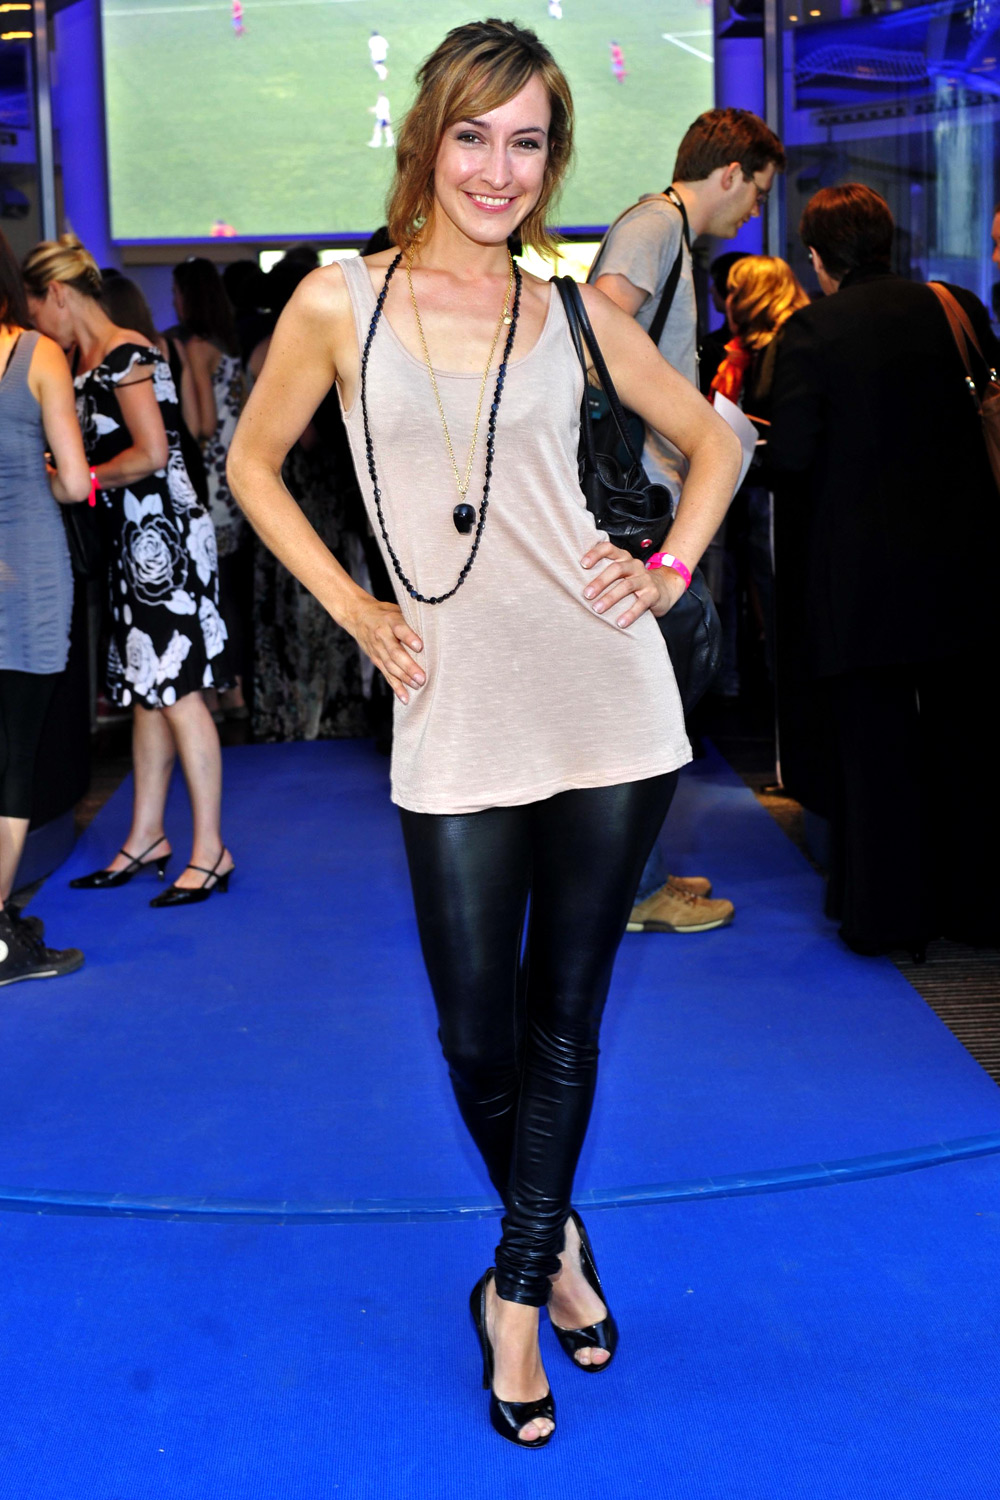 Maike von Bremen at Berlin Fashion Show